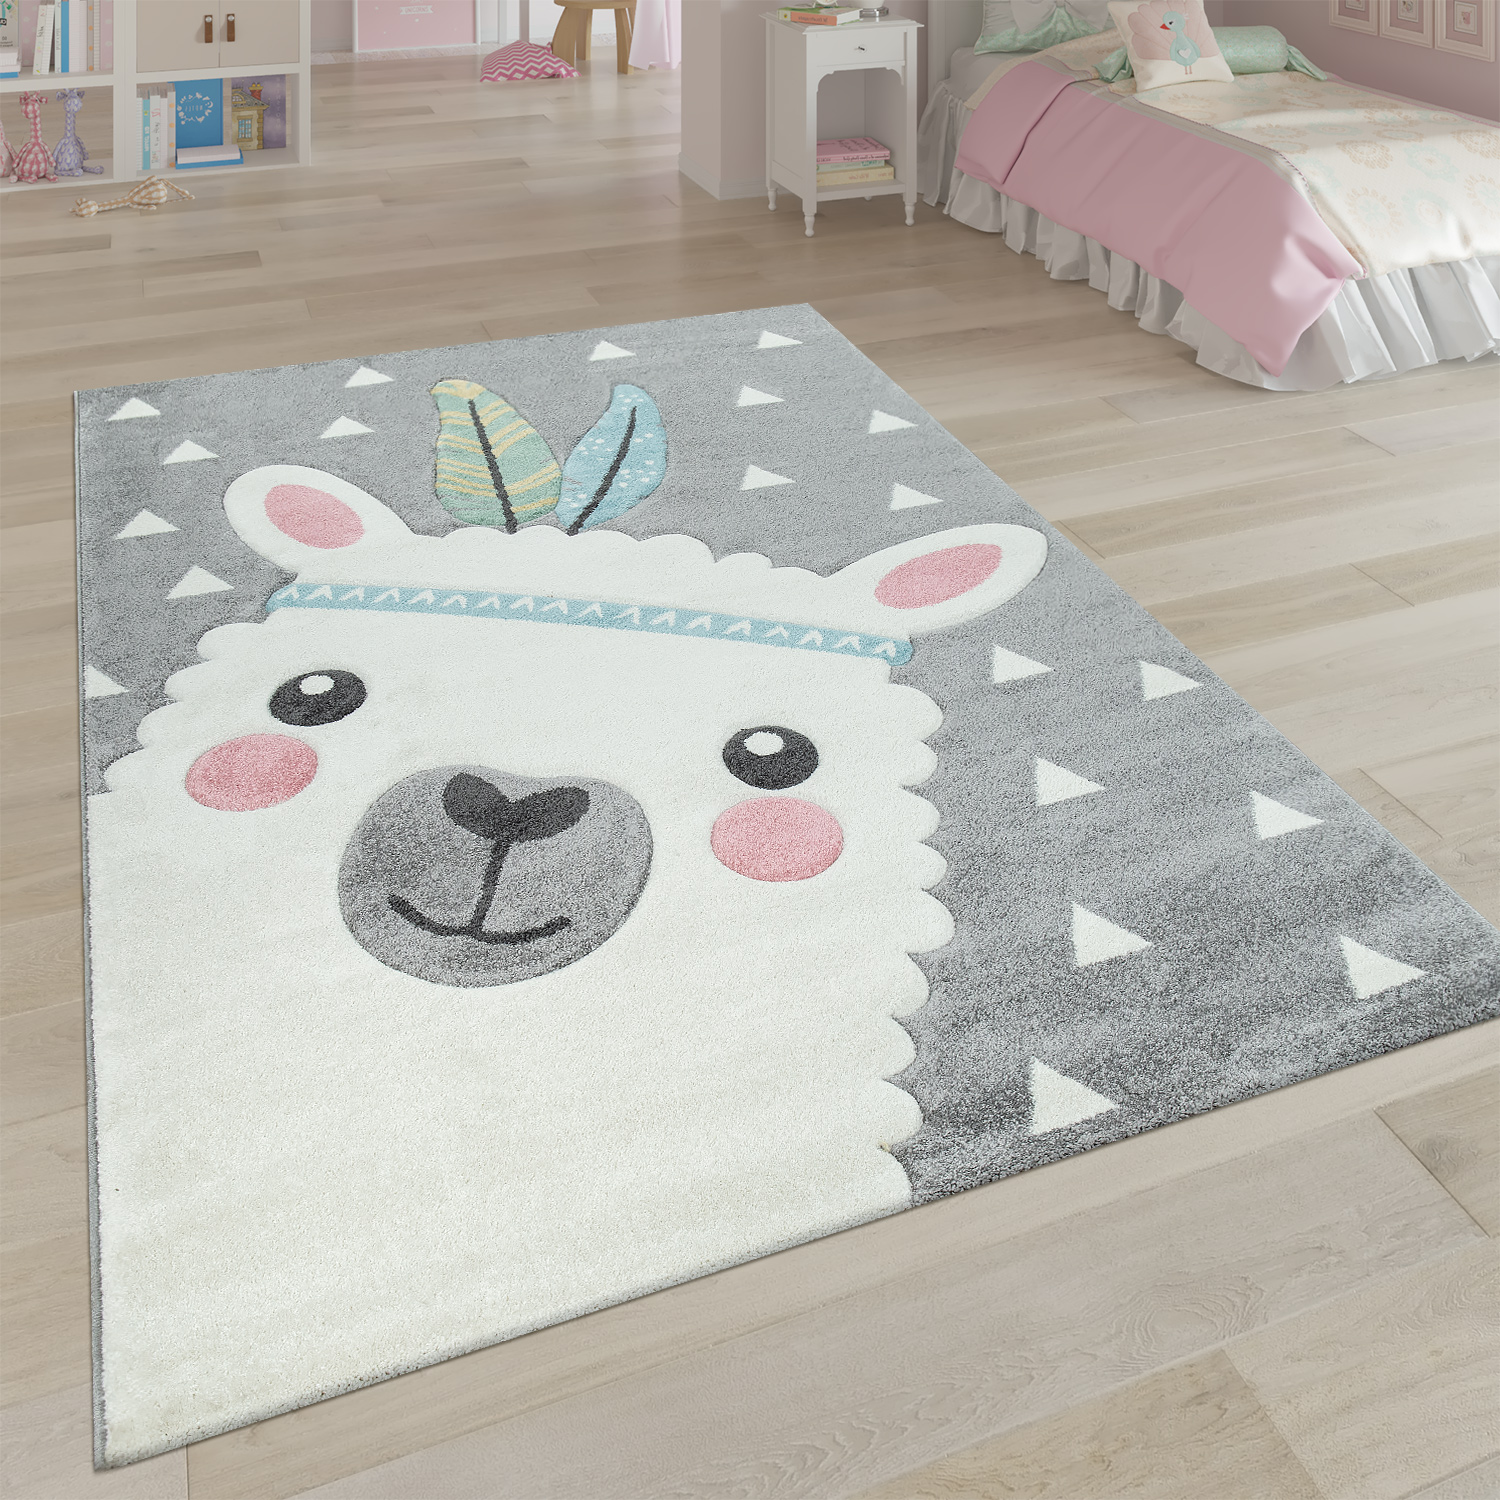 Children's Rug Children's Room 3D Effect Cute Alpaca Design Pastel Shades In Grey